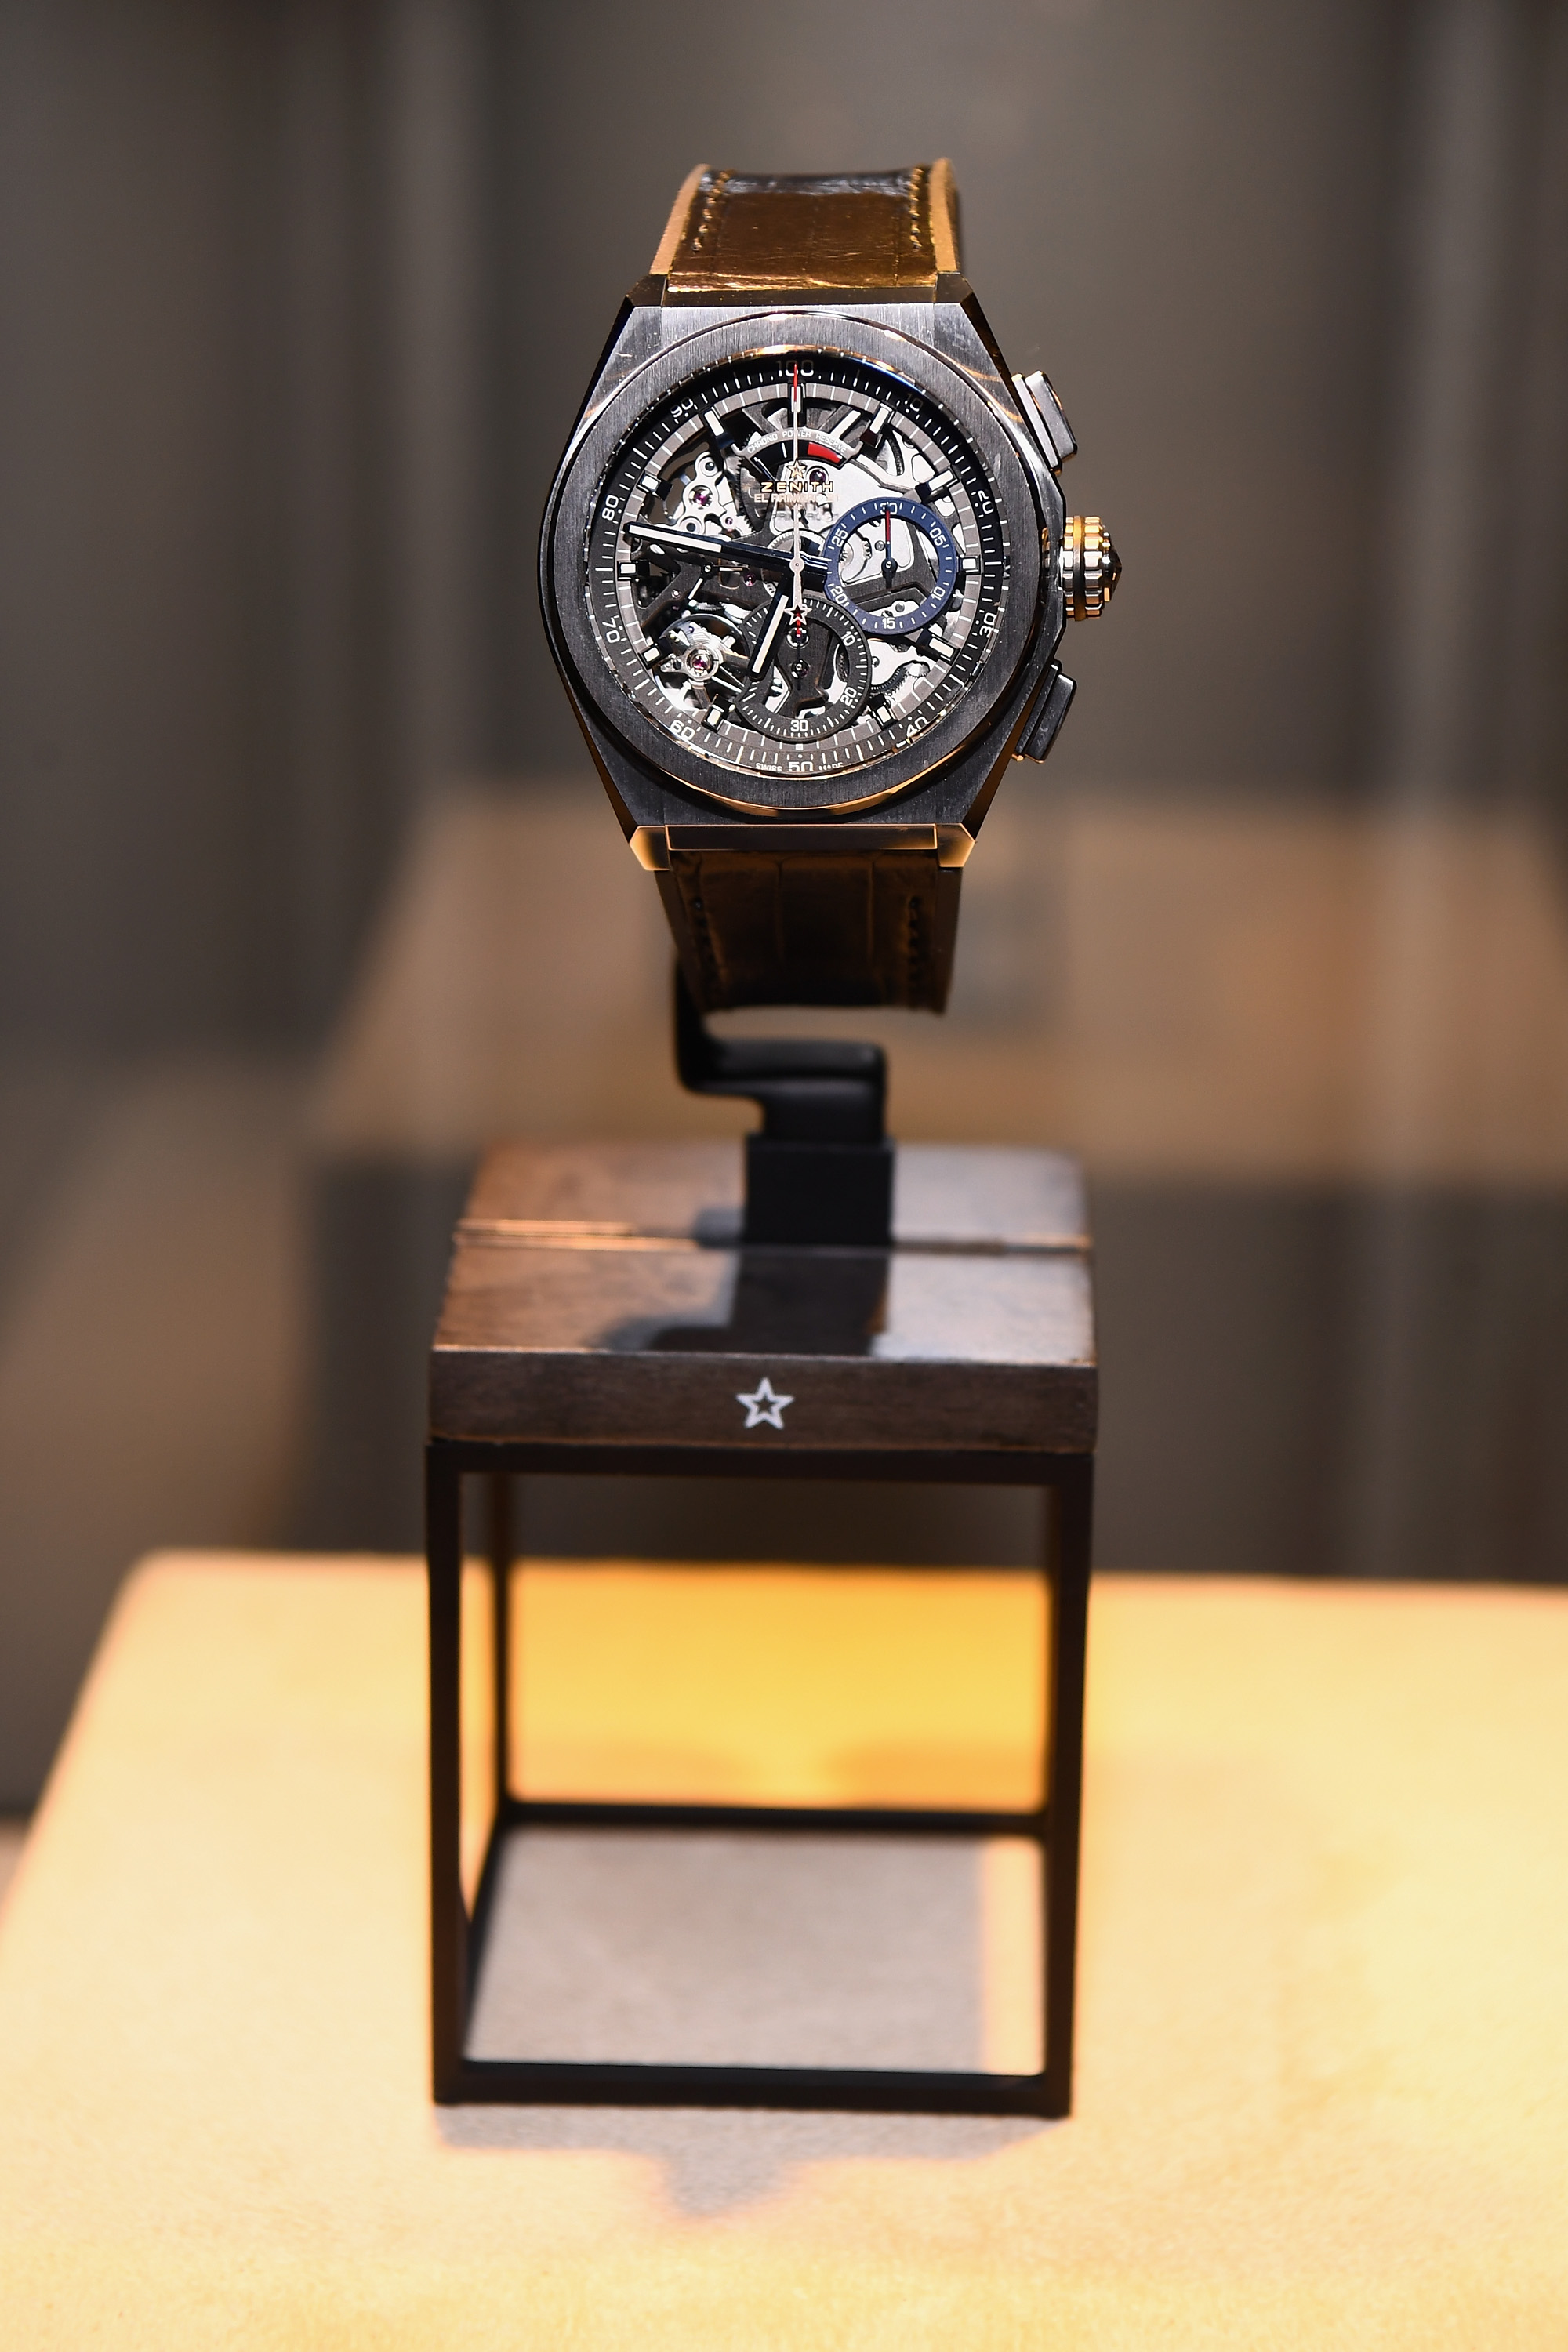 Zenith Watches on display as Zenith Watches and Swizz Beatz celebrate the launch of The Defy Collection at the Angel Orensanz Center on November 30, 2017 in New York City. (Photo by Dave Kotinsky/Getty Images for Zenith)